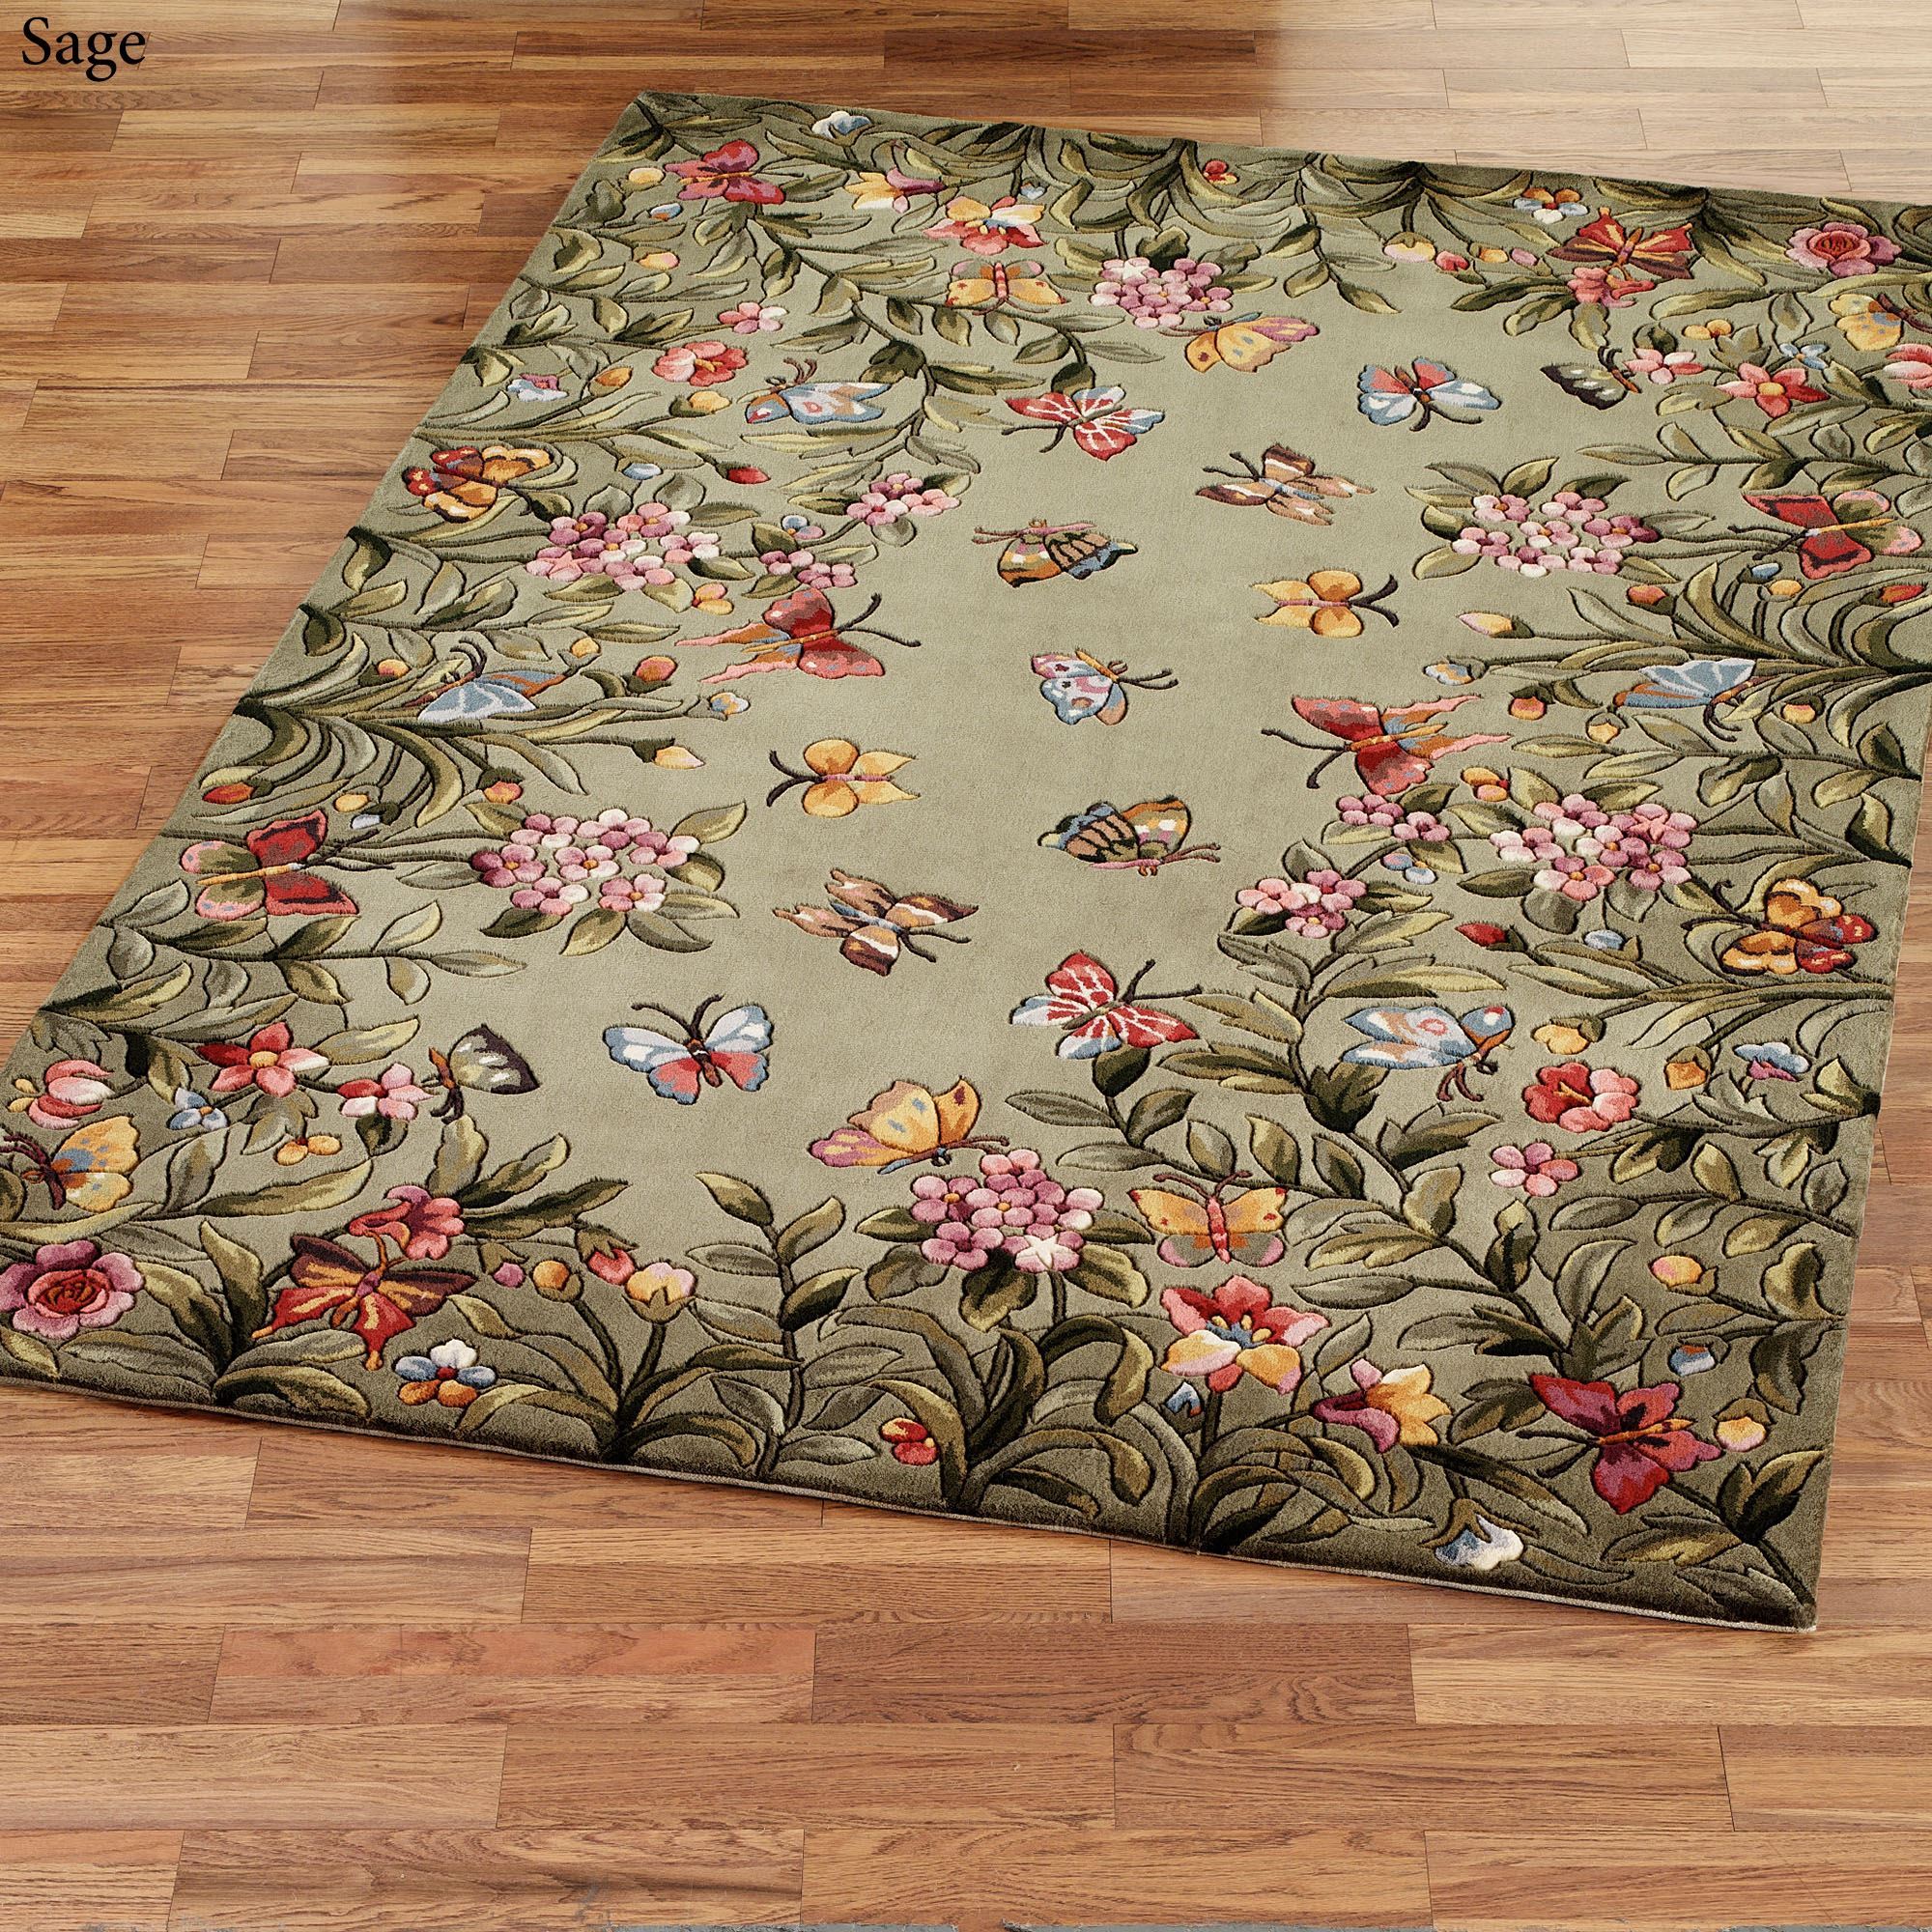 Garden Decor Nutty Rug: Athena Garden Floral Area Rugs